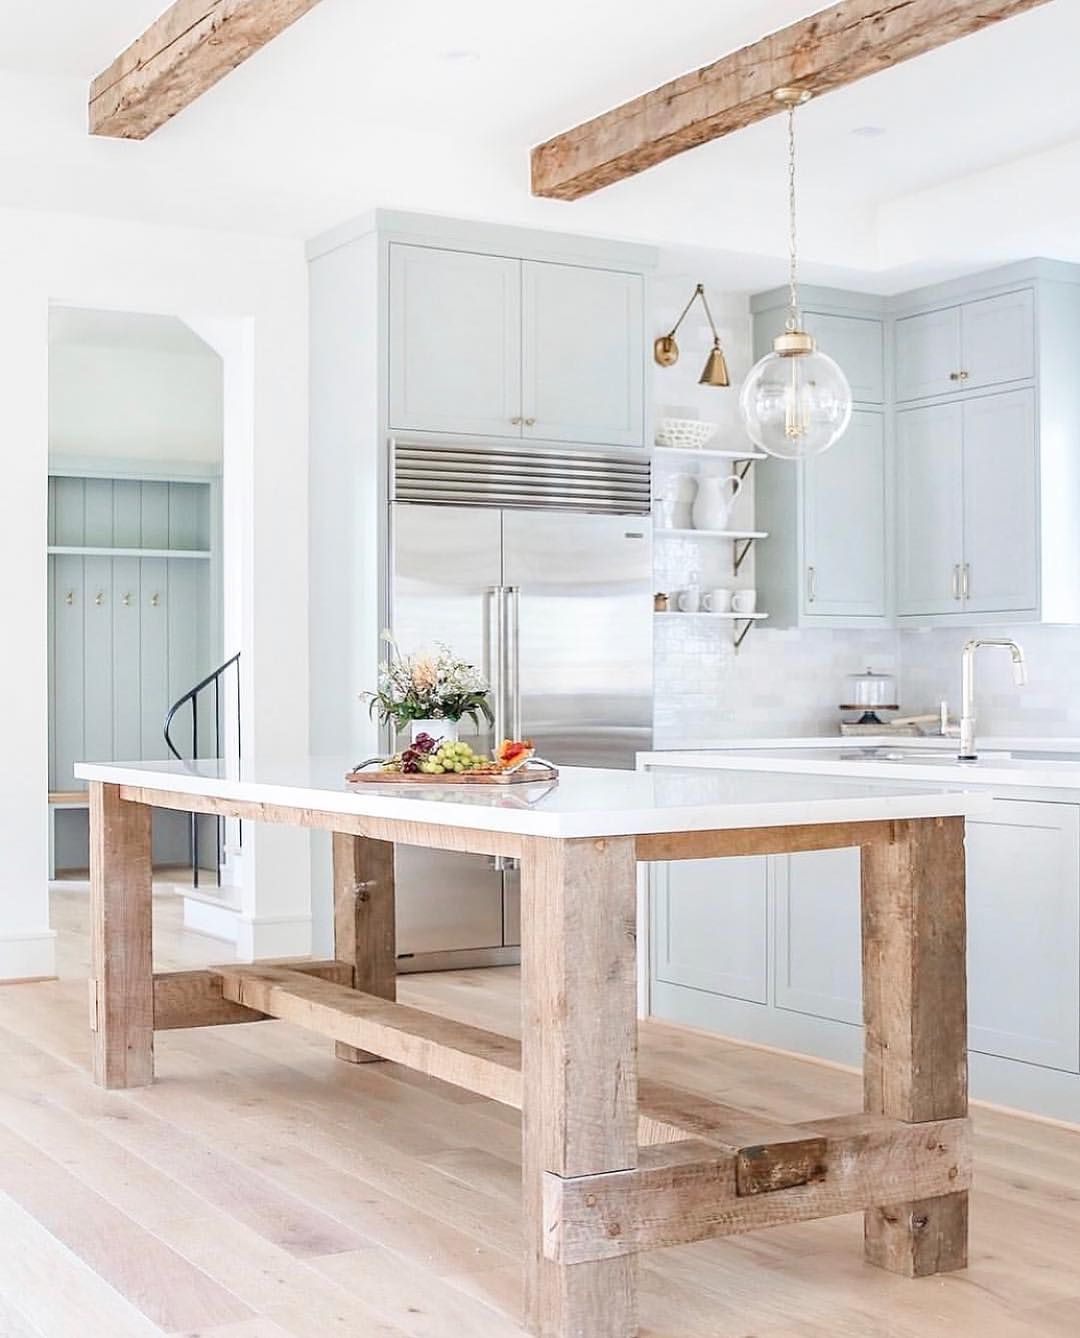 Nina On Instagram I Ve Mentioned Before That We Re Going To Have A Double Island At The New Ho Salle A Manger Cuisine Ilot De Cuisine En Bois Cuisines Maison